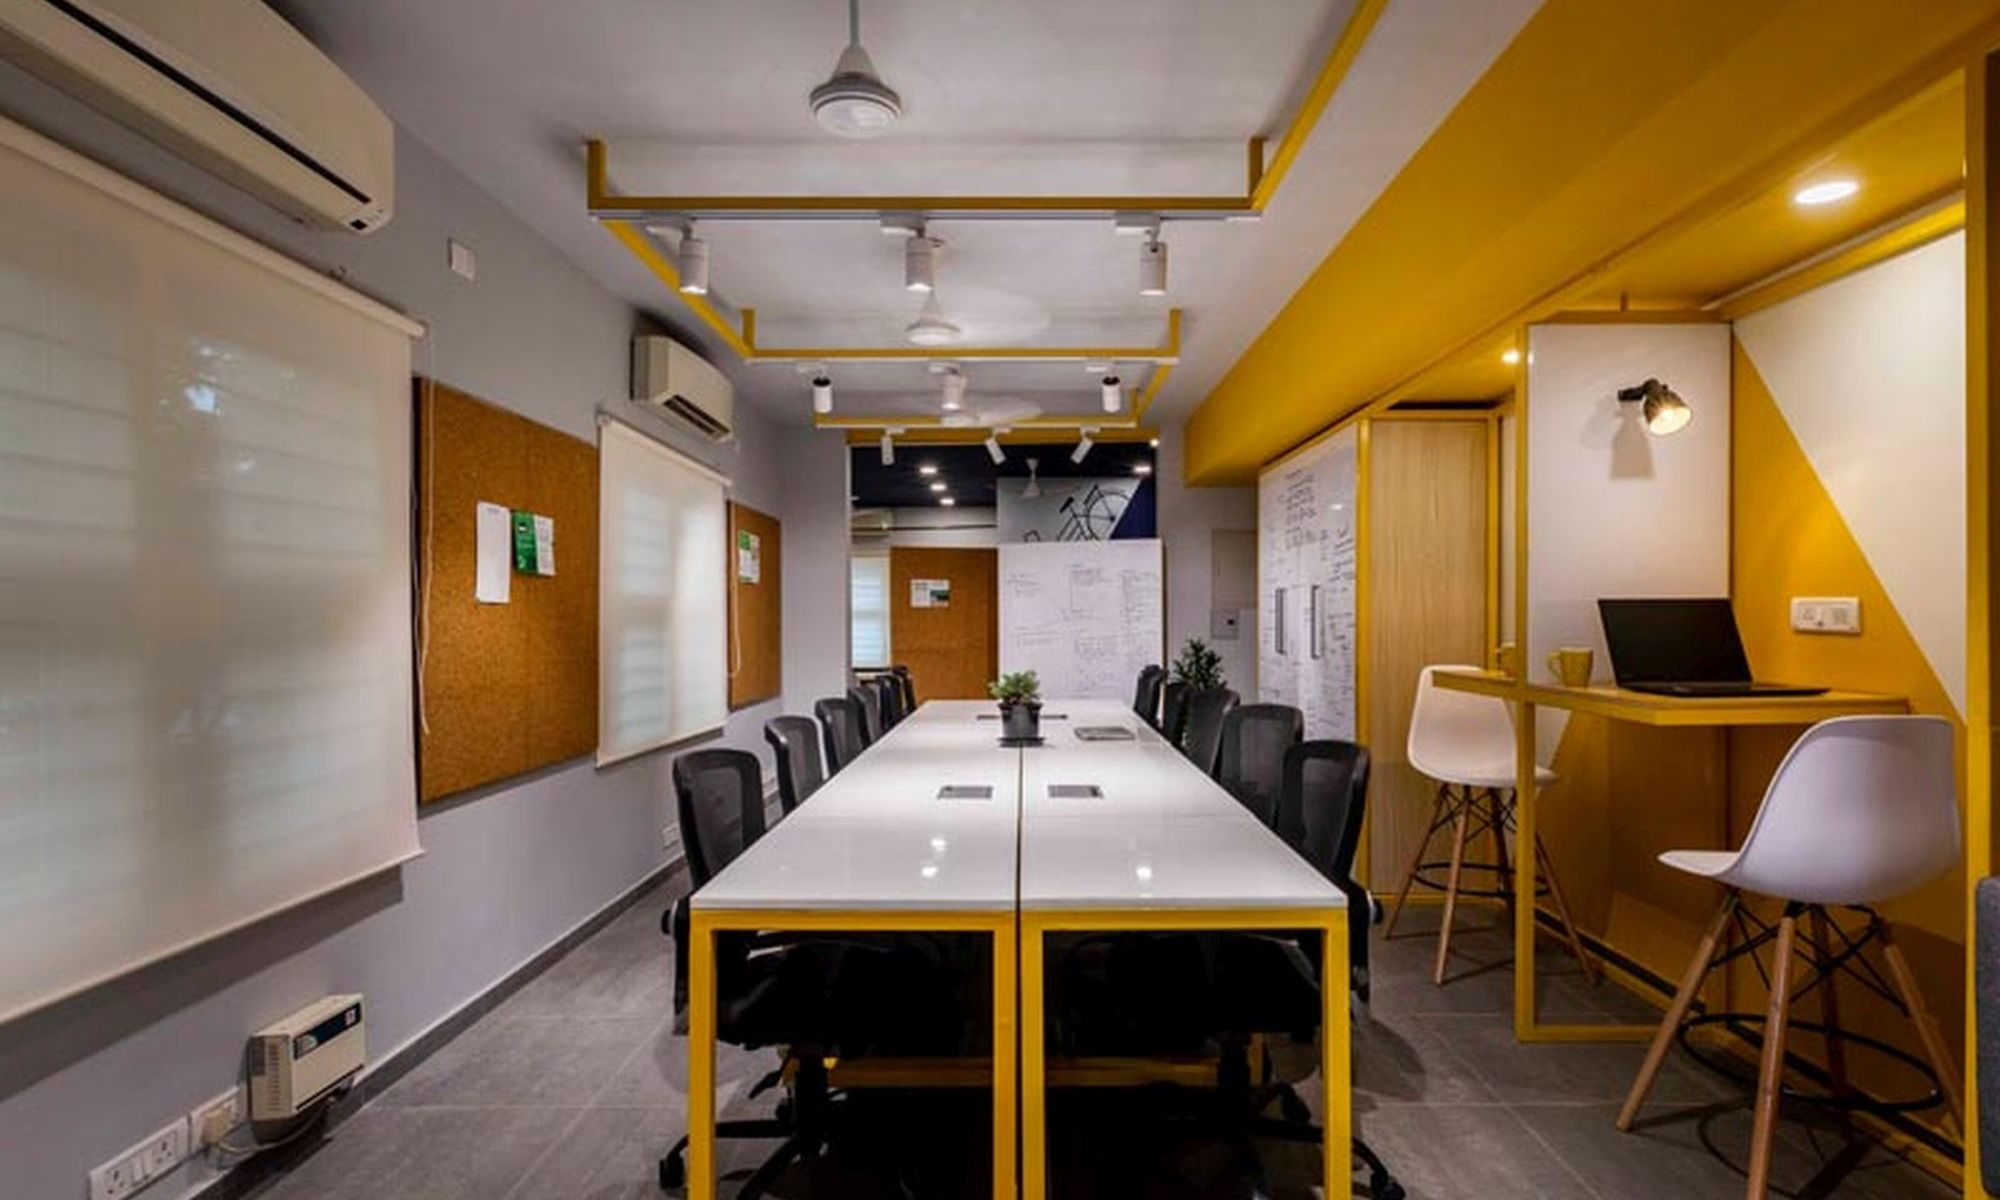 The Kabadiwalla Connect Workspace at Chennai by Drawing Hands Studio 39